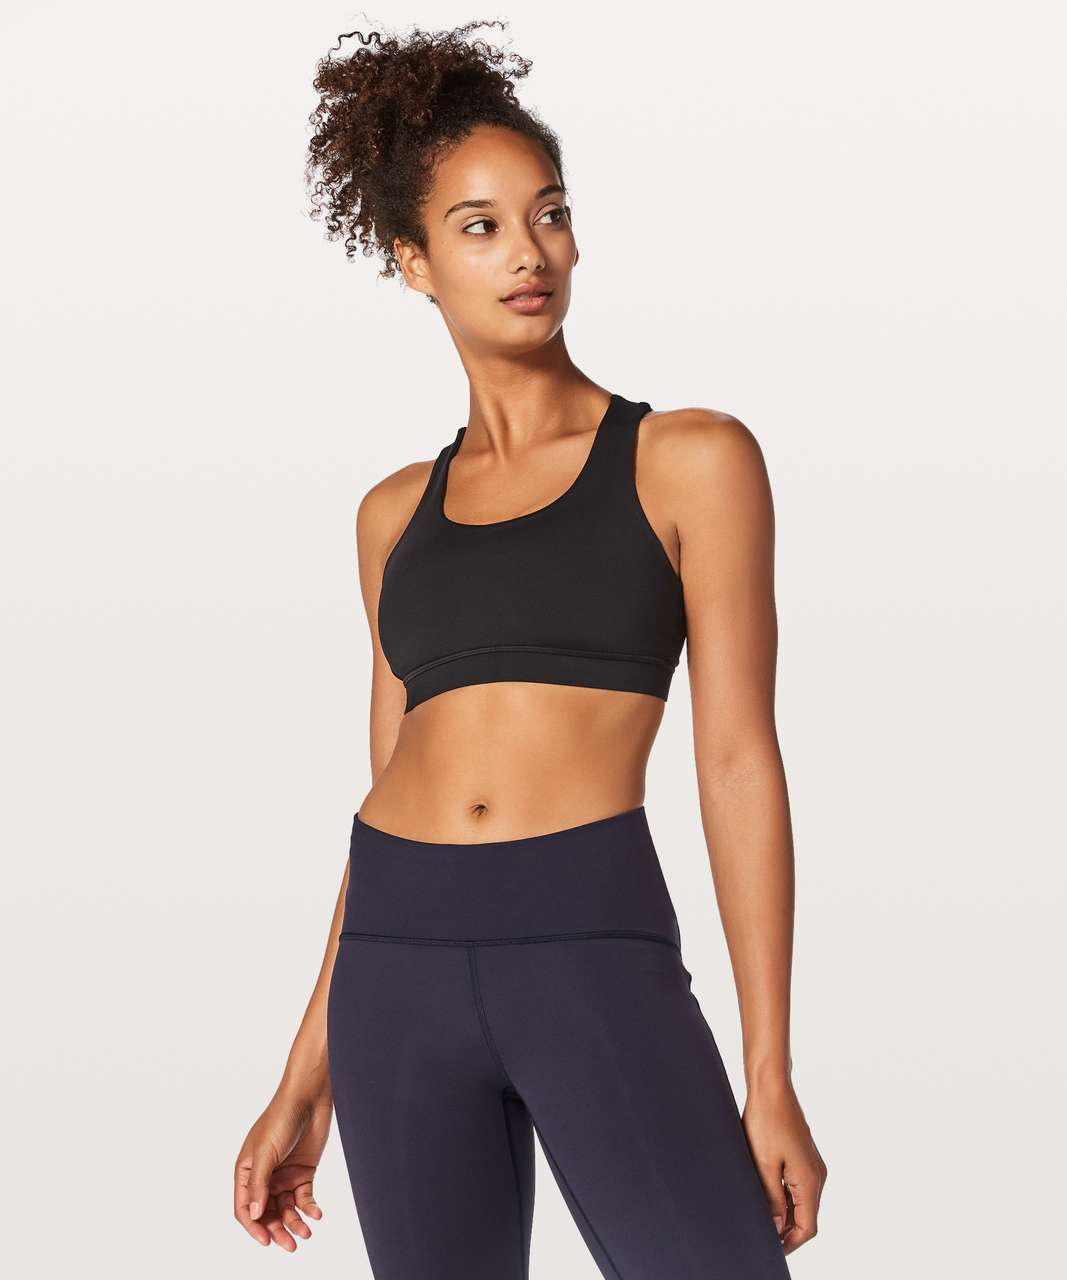 Lululemon Energy Bra Braided - Black